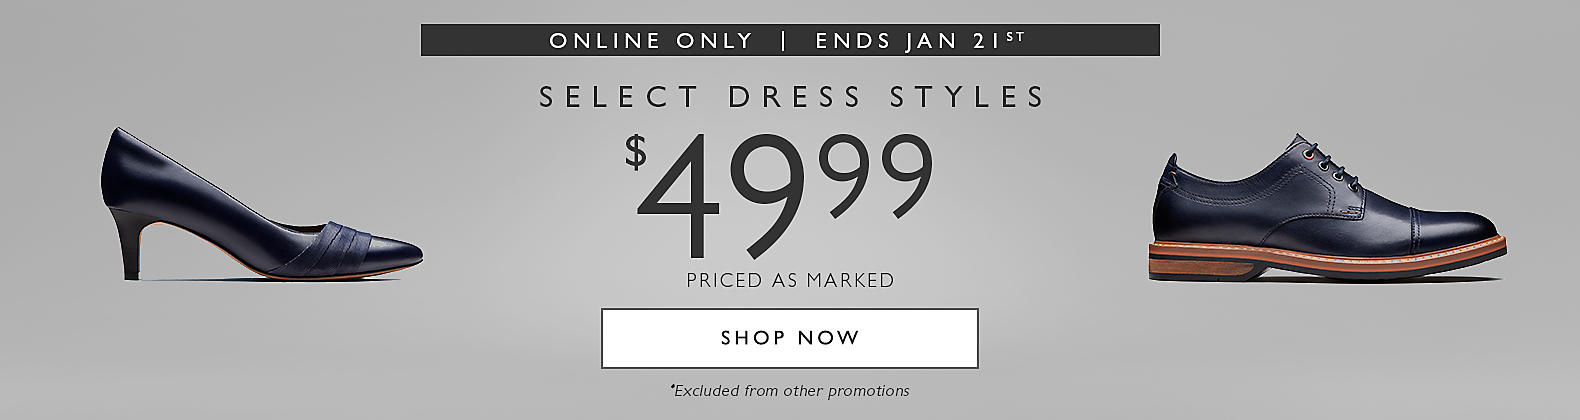 Select Dress Styles for $49.99